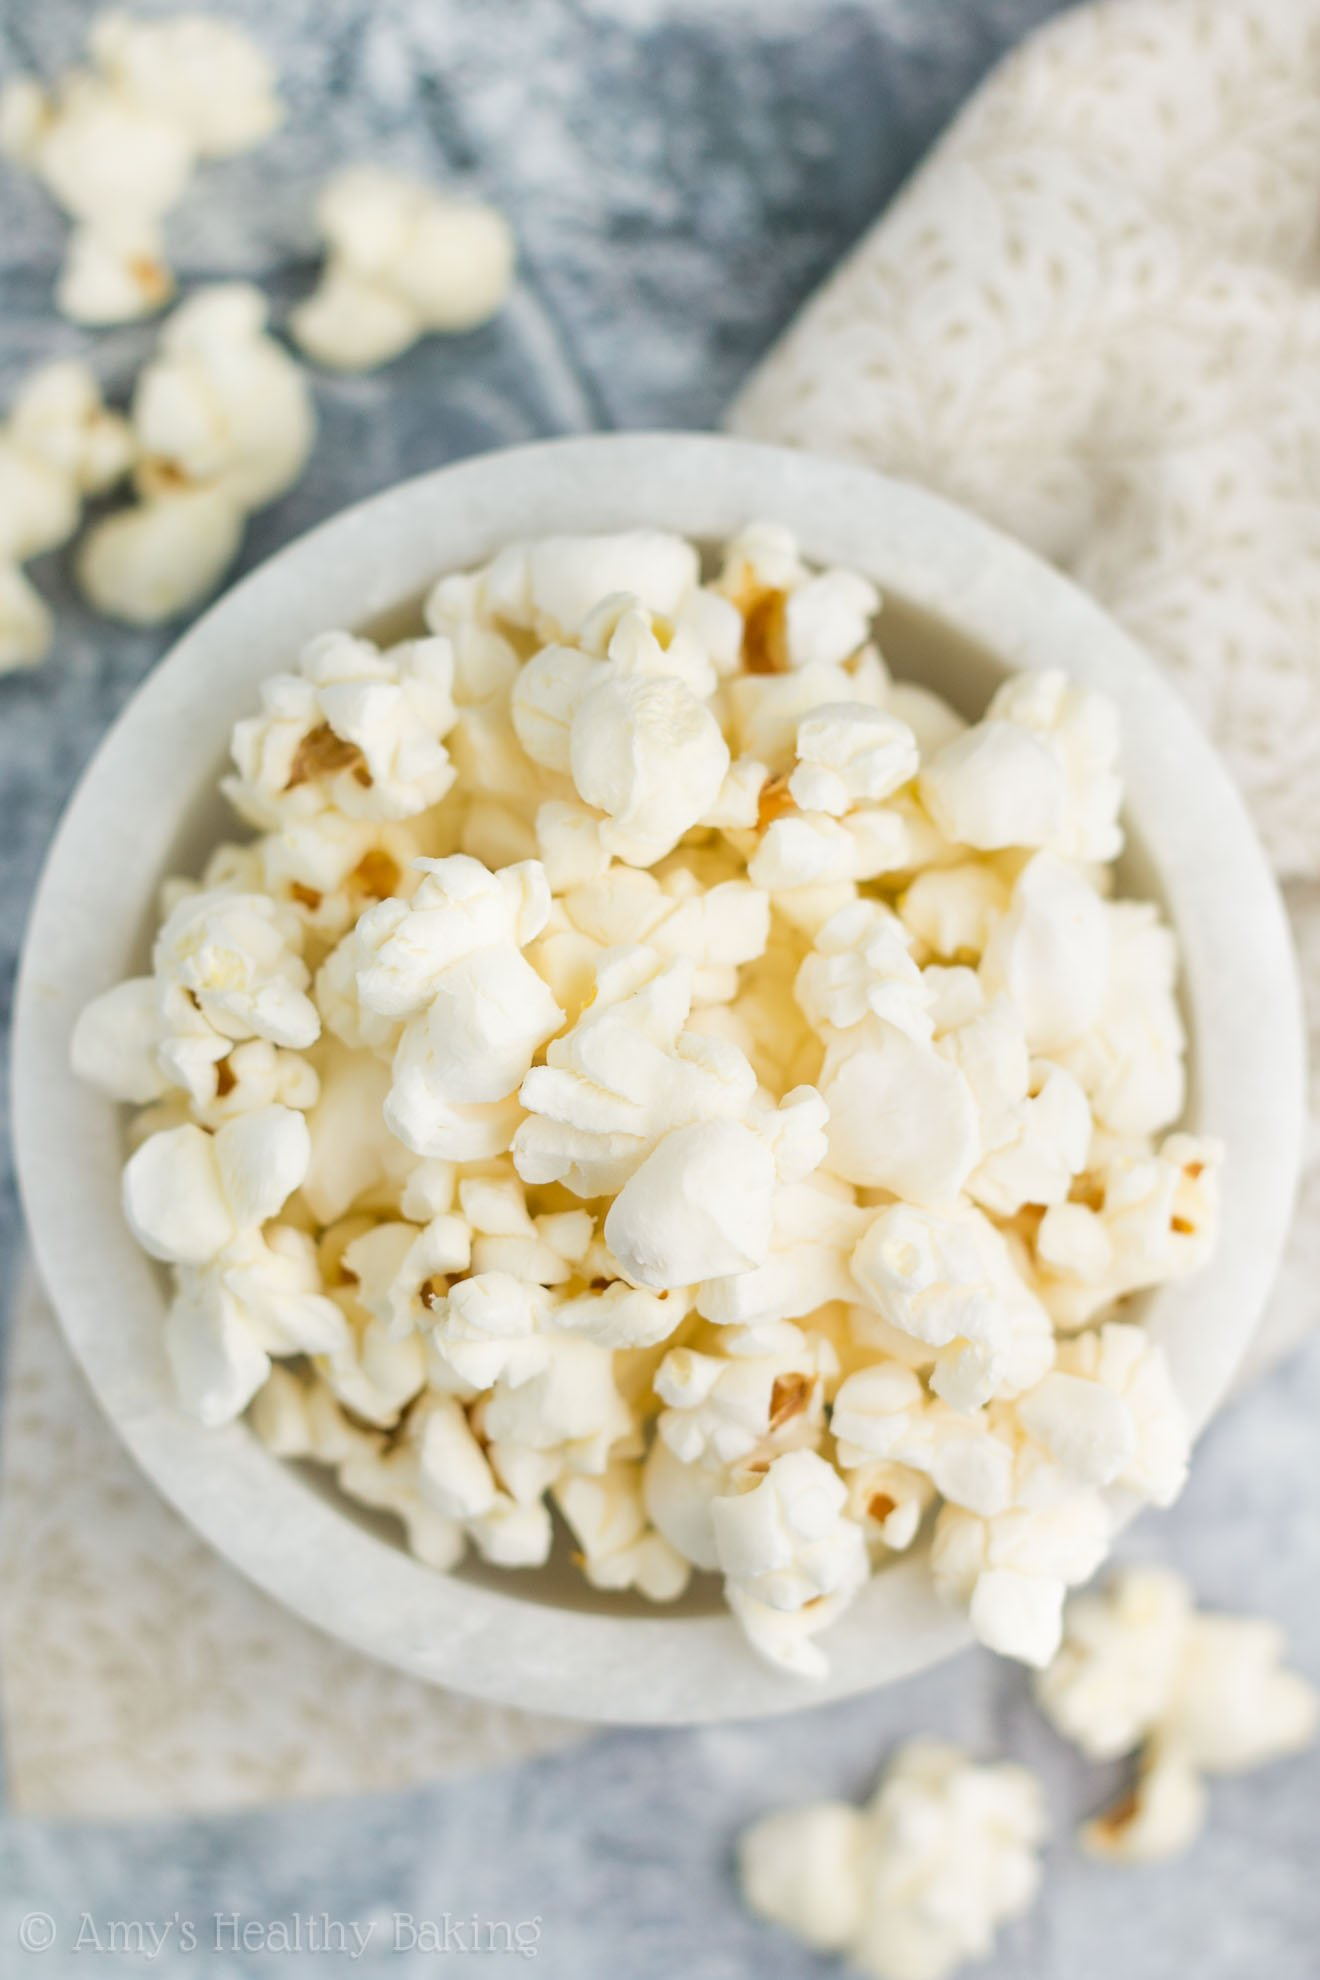 Healthy Low-Calorie Homemade Air Popped Popcorn